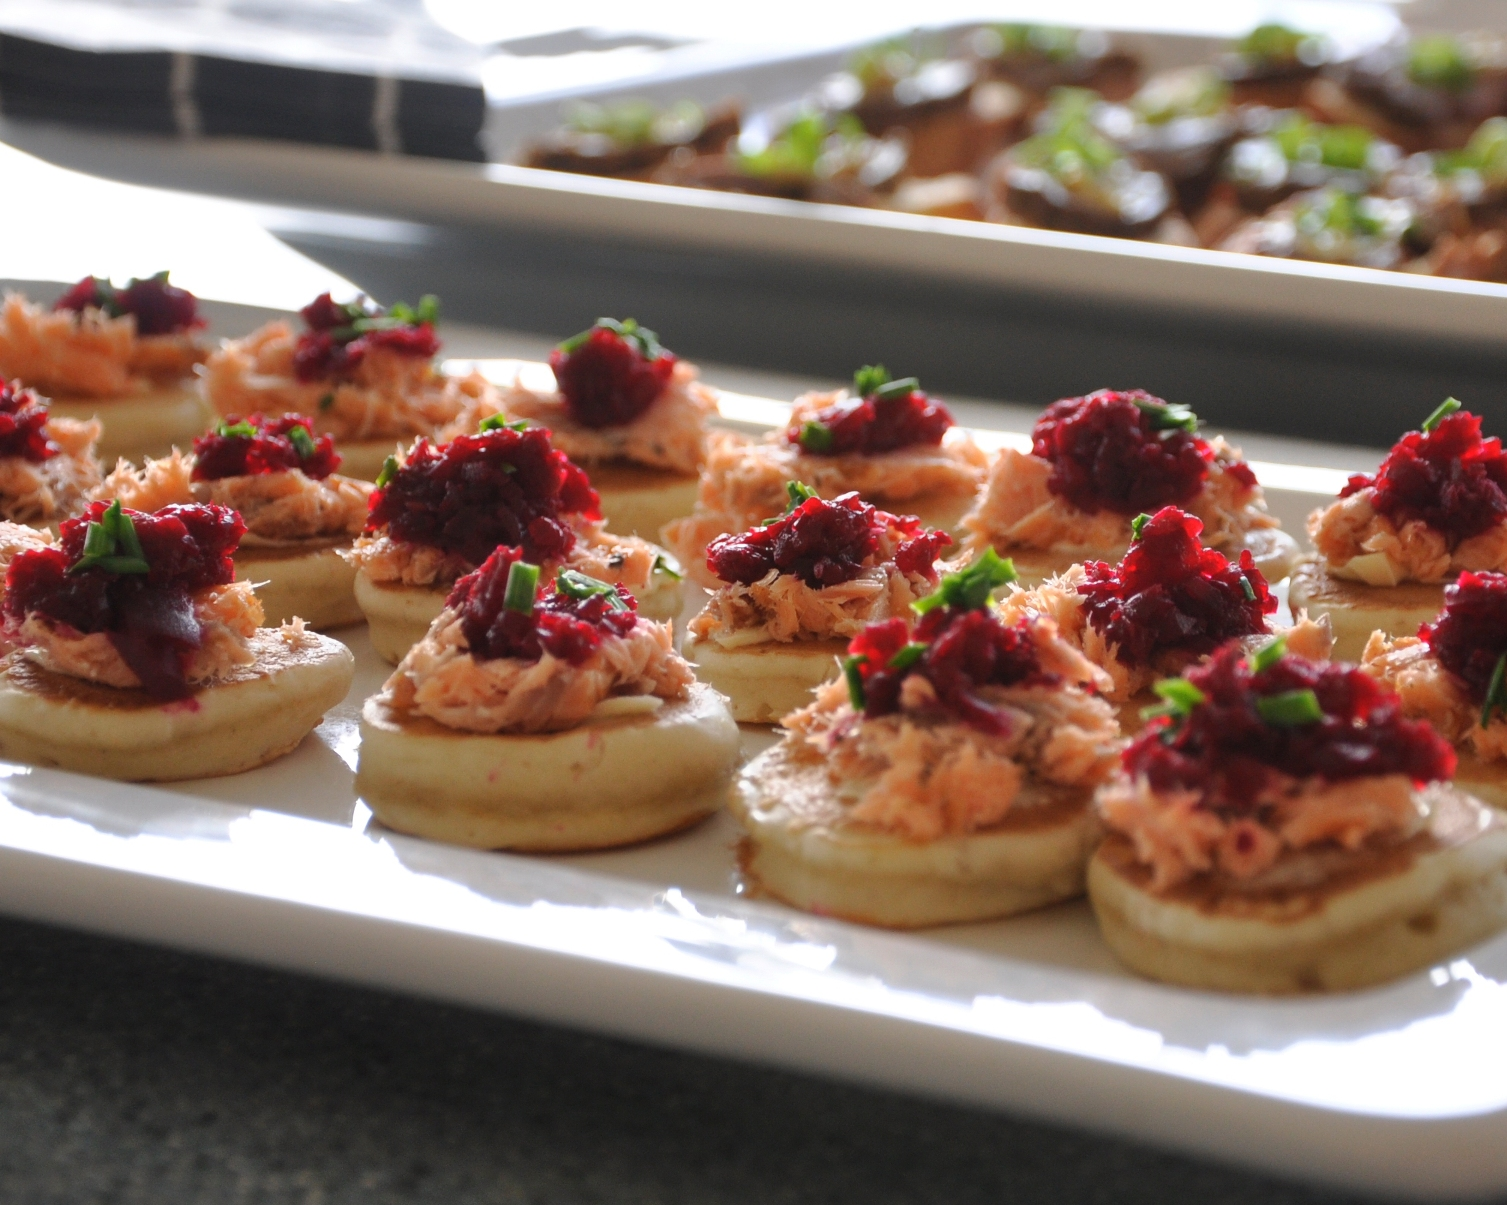 Hot smoked salmon blinis with homemade beetroot relish